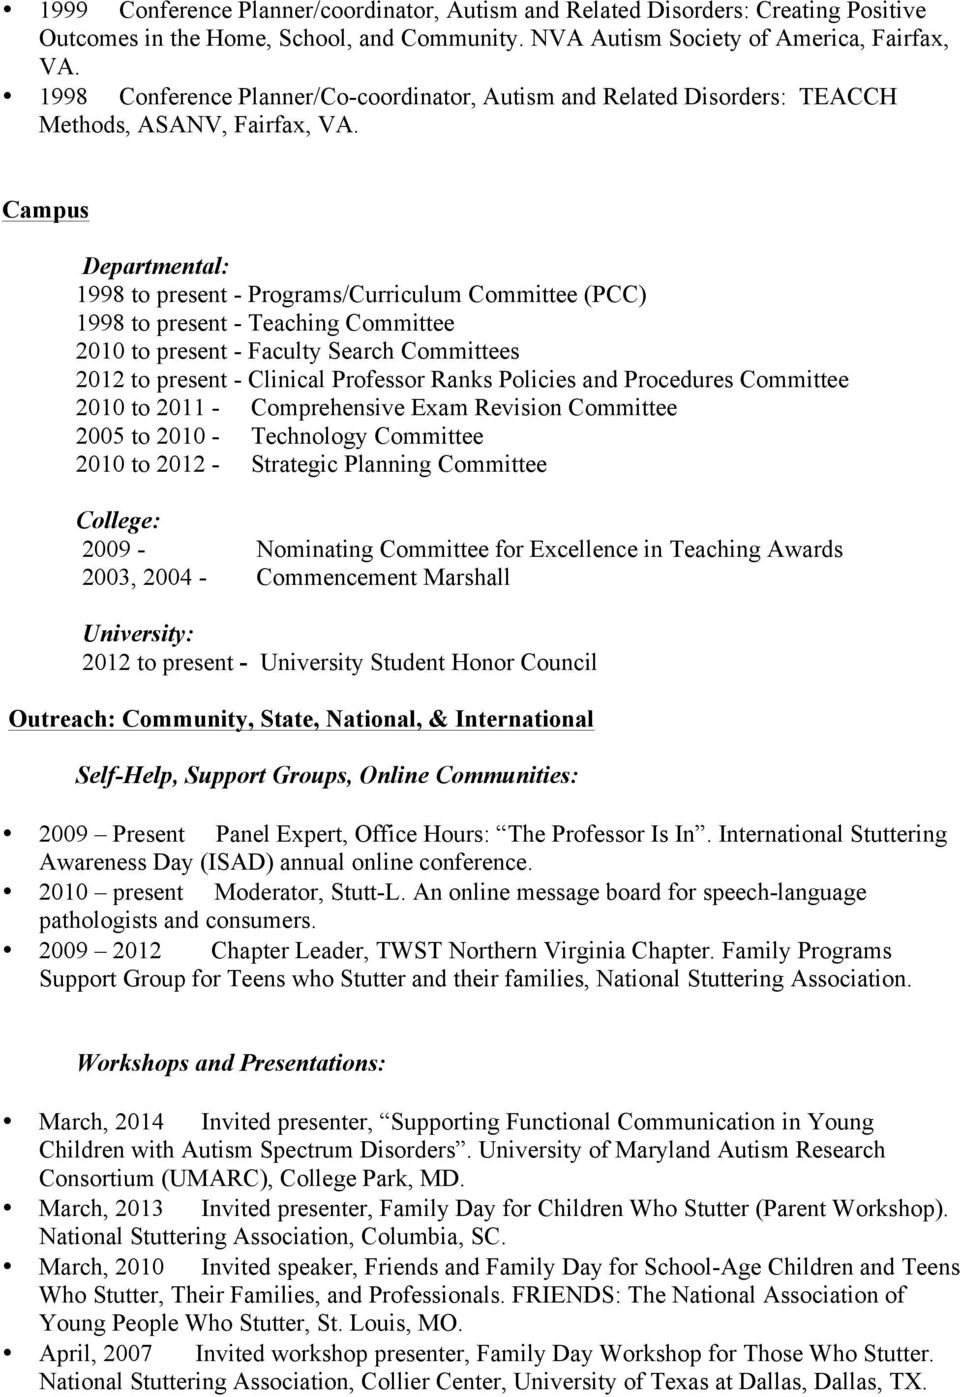 Campus Departmental: 1998 to present - Programs/Curriculum Committee (PCC) 1998 to present - Teaching Committee 2010 to present - Faculty Search Committees 2012 to present - Clinical Professor Ranks